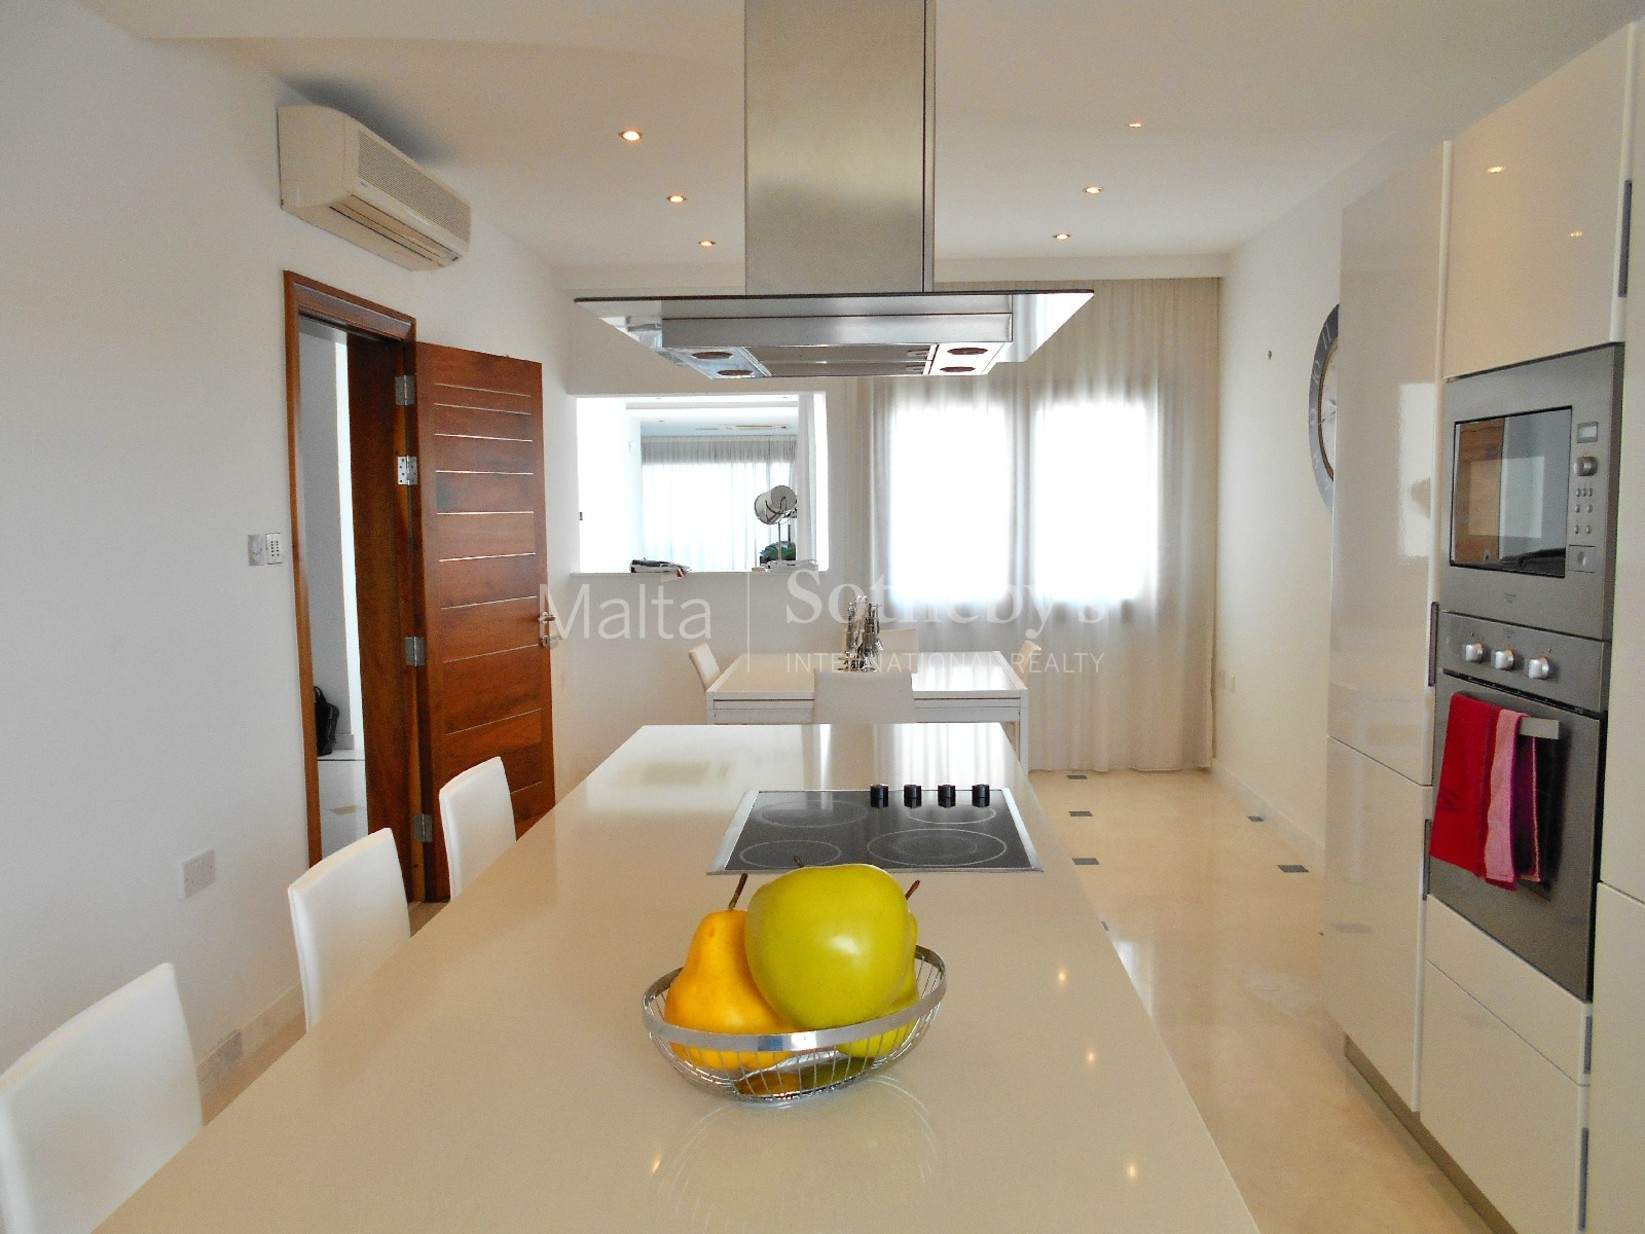 3 bed Penthouse For Rent in St Paul's Bay, St Paul's Bay - thumb 5